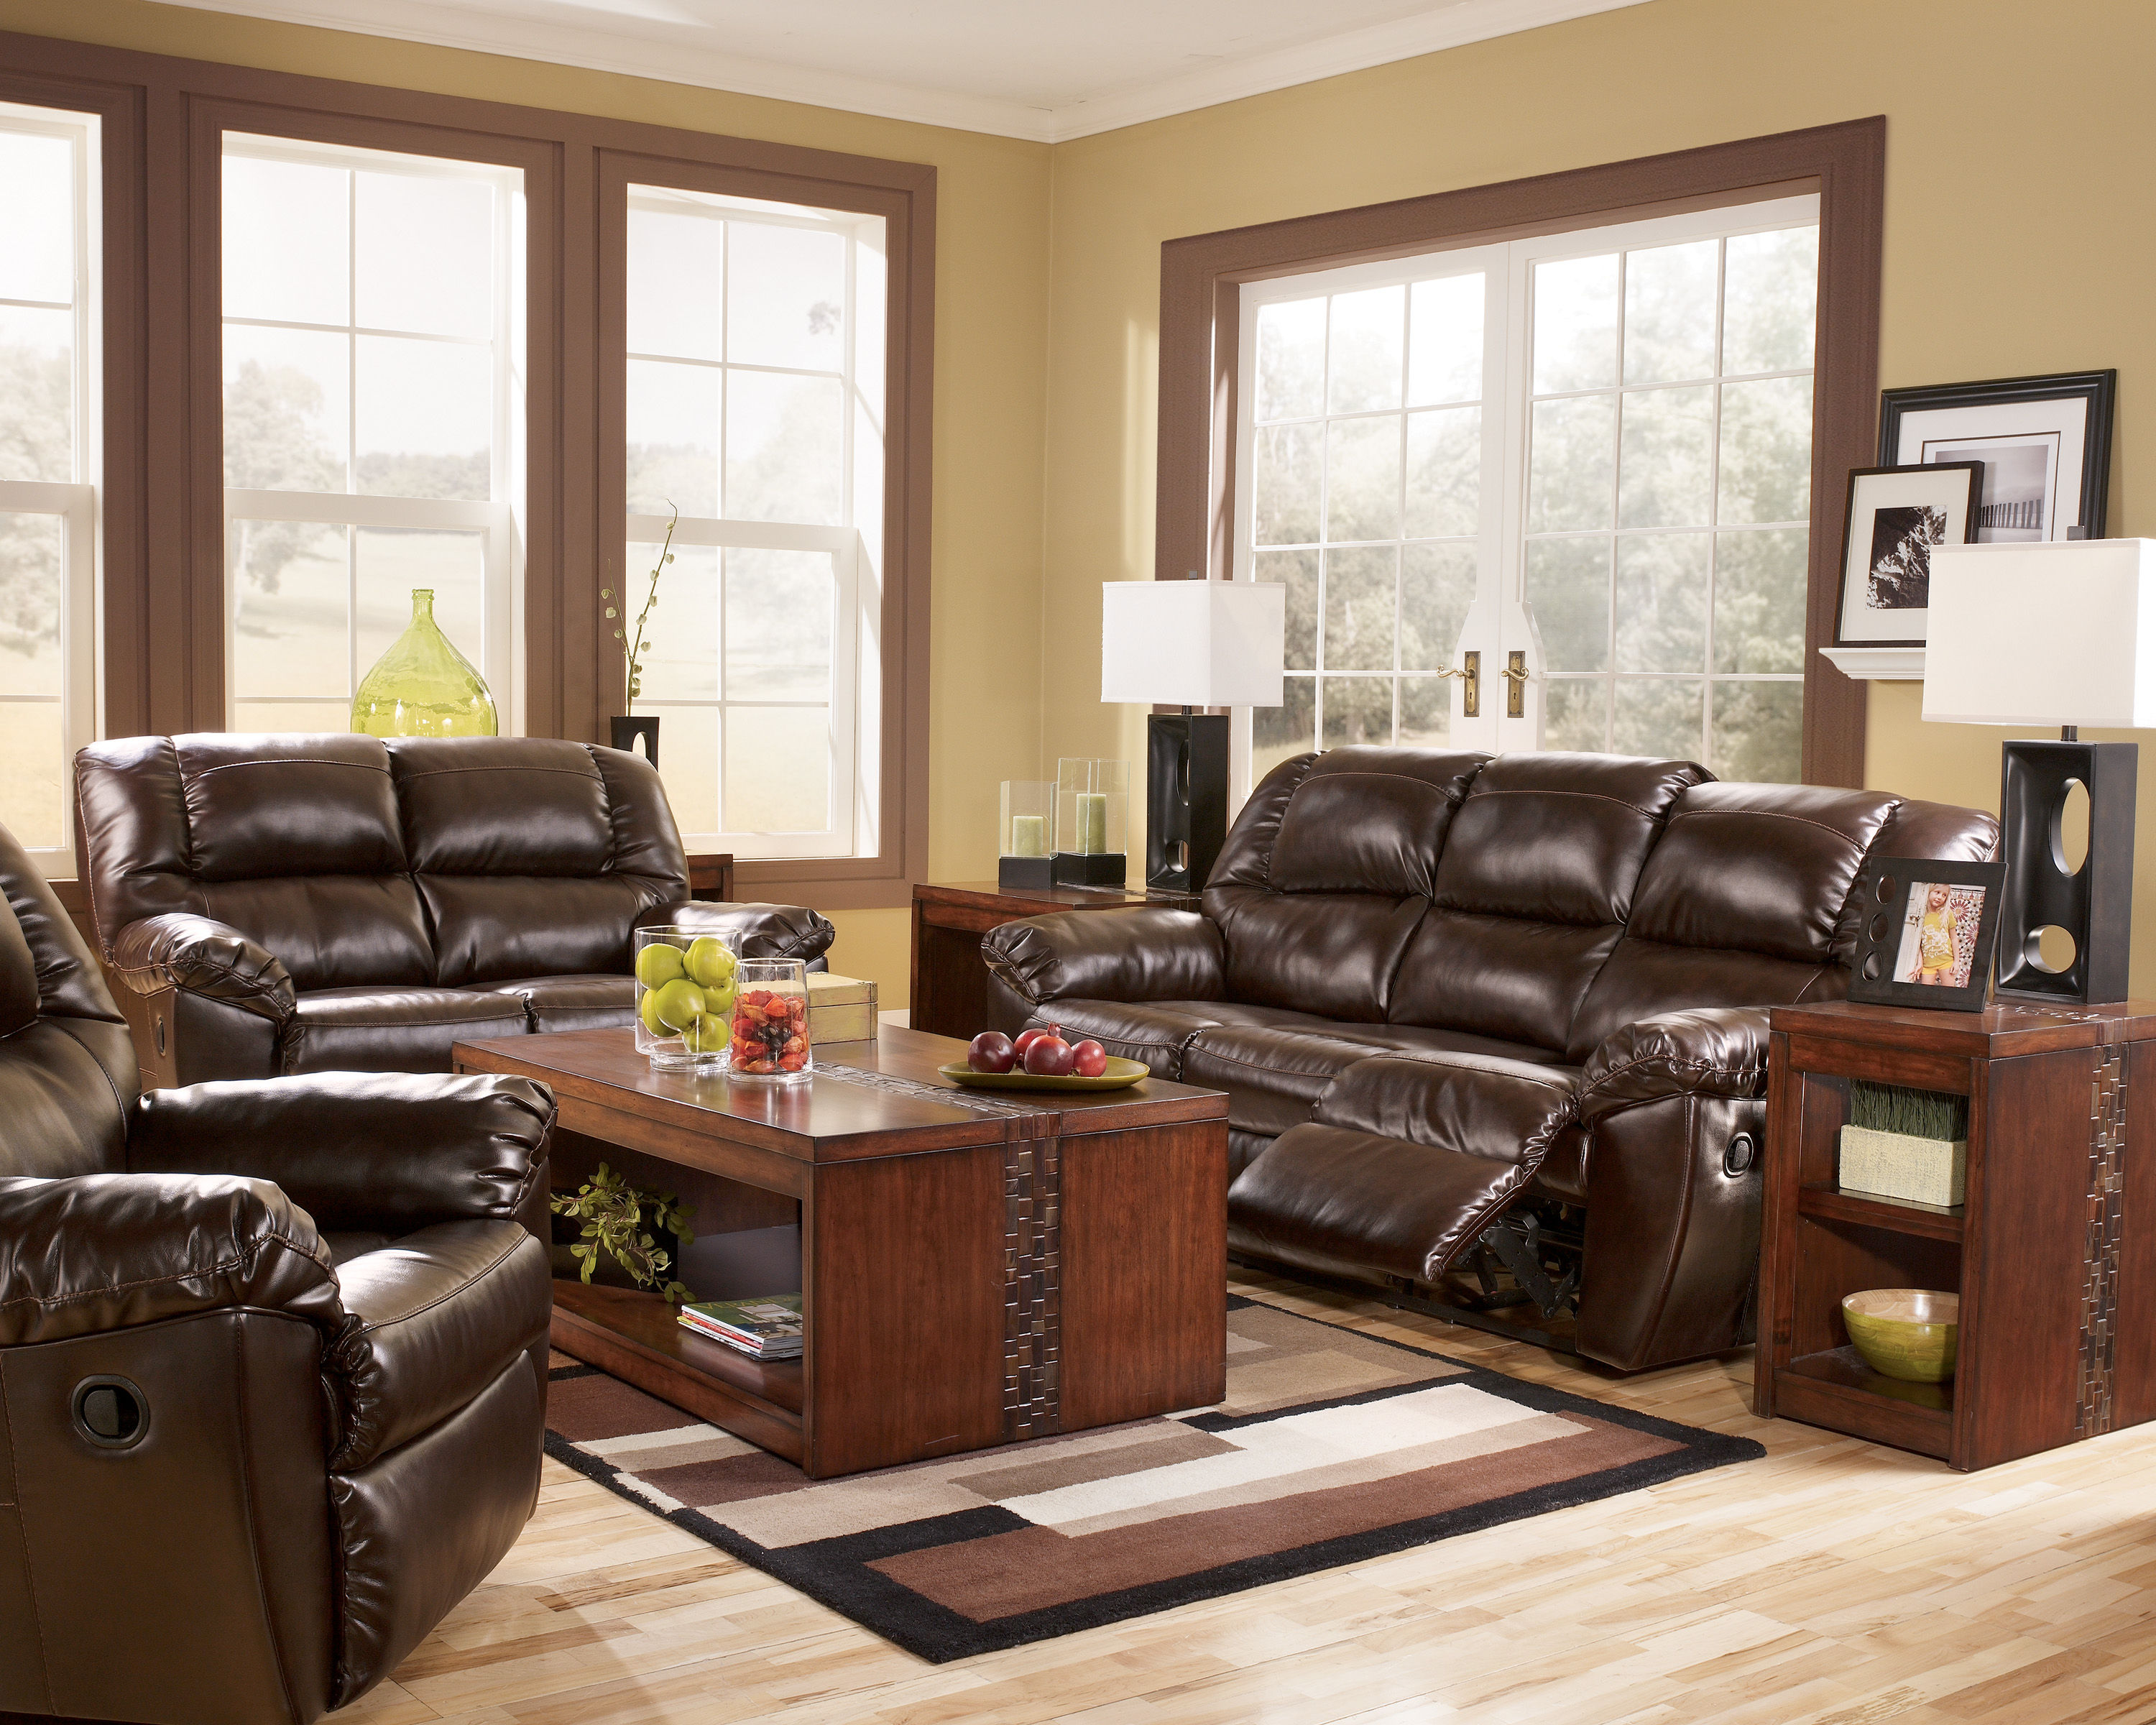 Rouge Durablend Mahogany Living Room Set The Classy Home